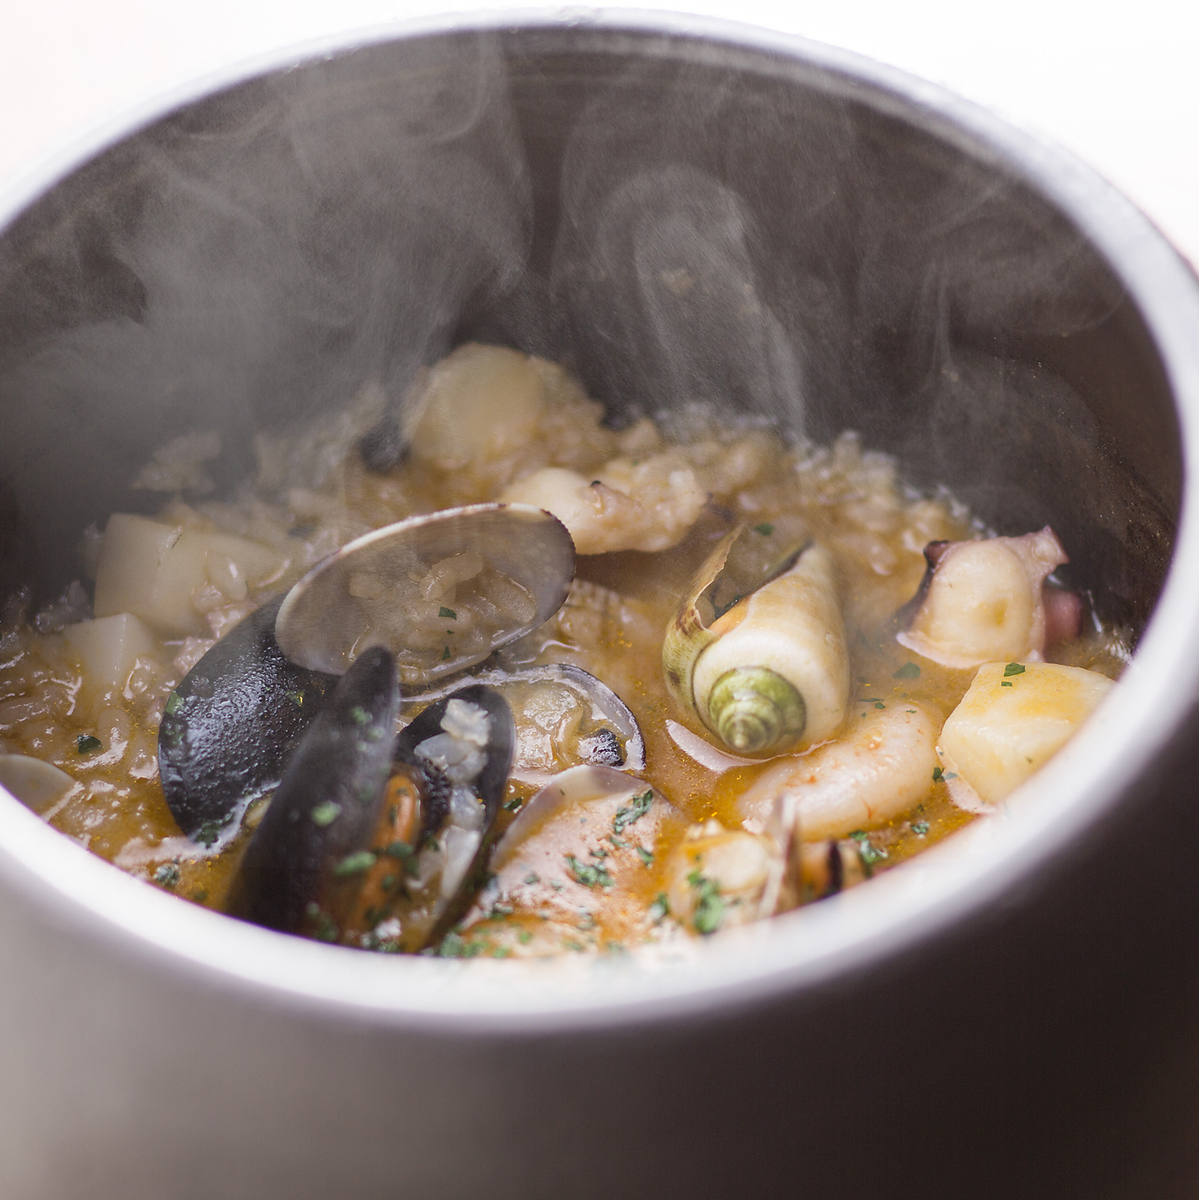 【Honorable! Hata Plus specialties】 Spanish pot Rice Hatada fresh fish & seafood tailoring